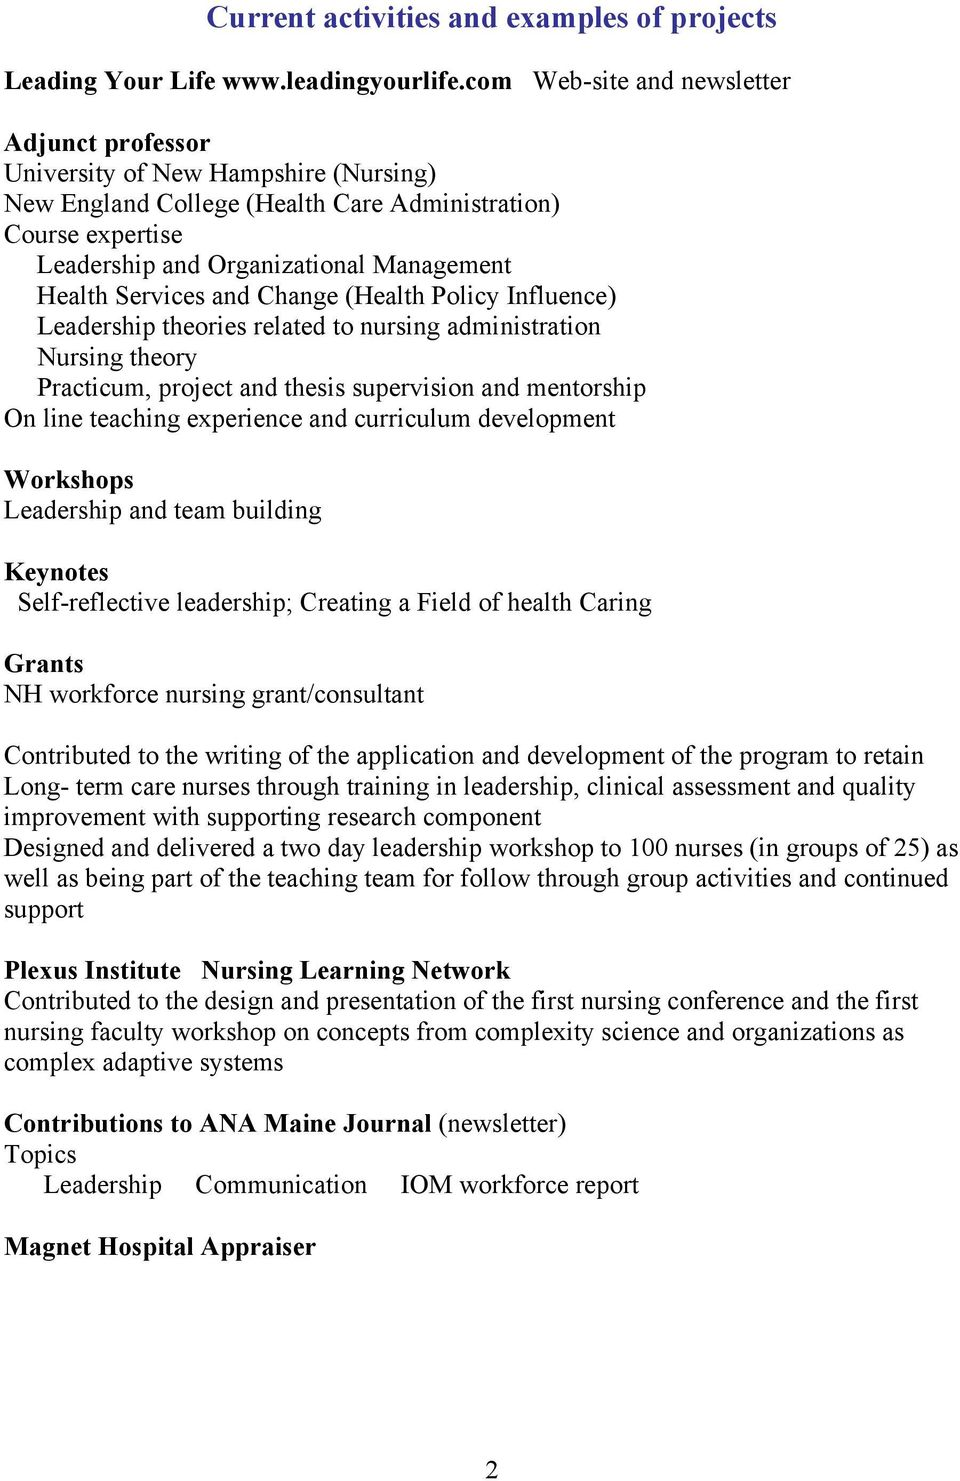 Services and Change (Health Policy Influence) Leadership theories related to nursing administration Nursing theory Practicum, project and thesis supervision and mentorship On line teaching experience